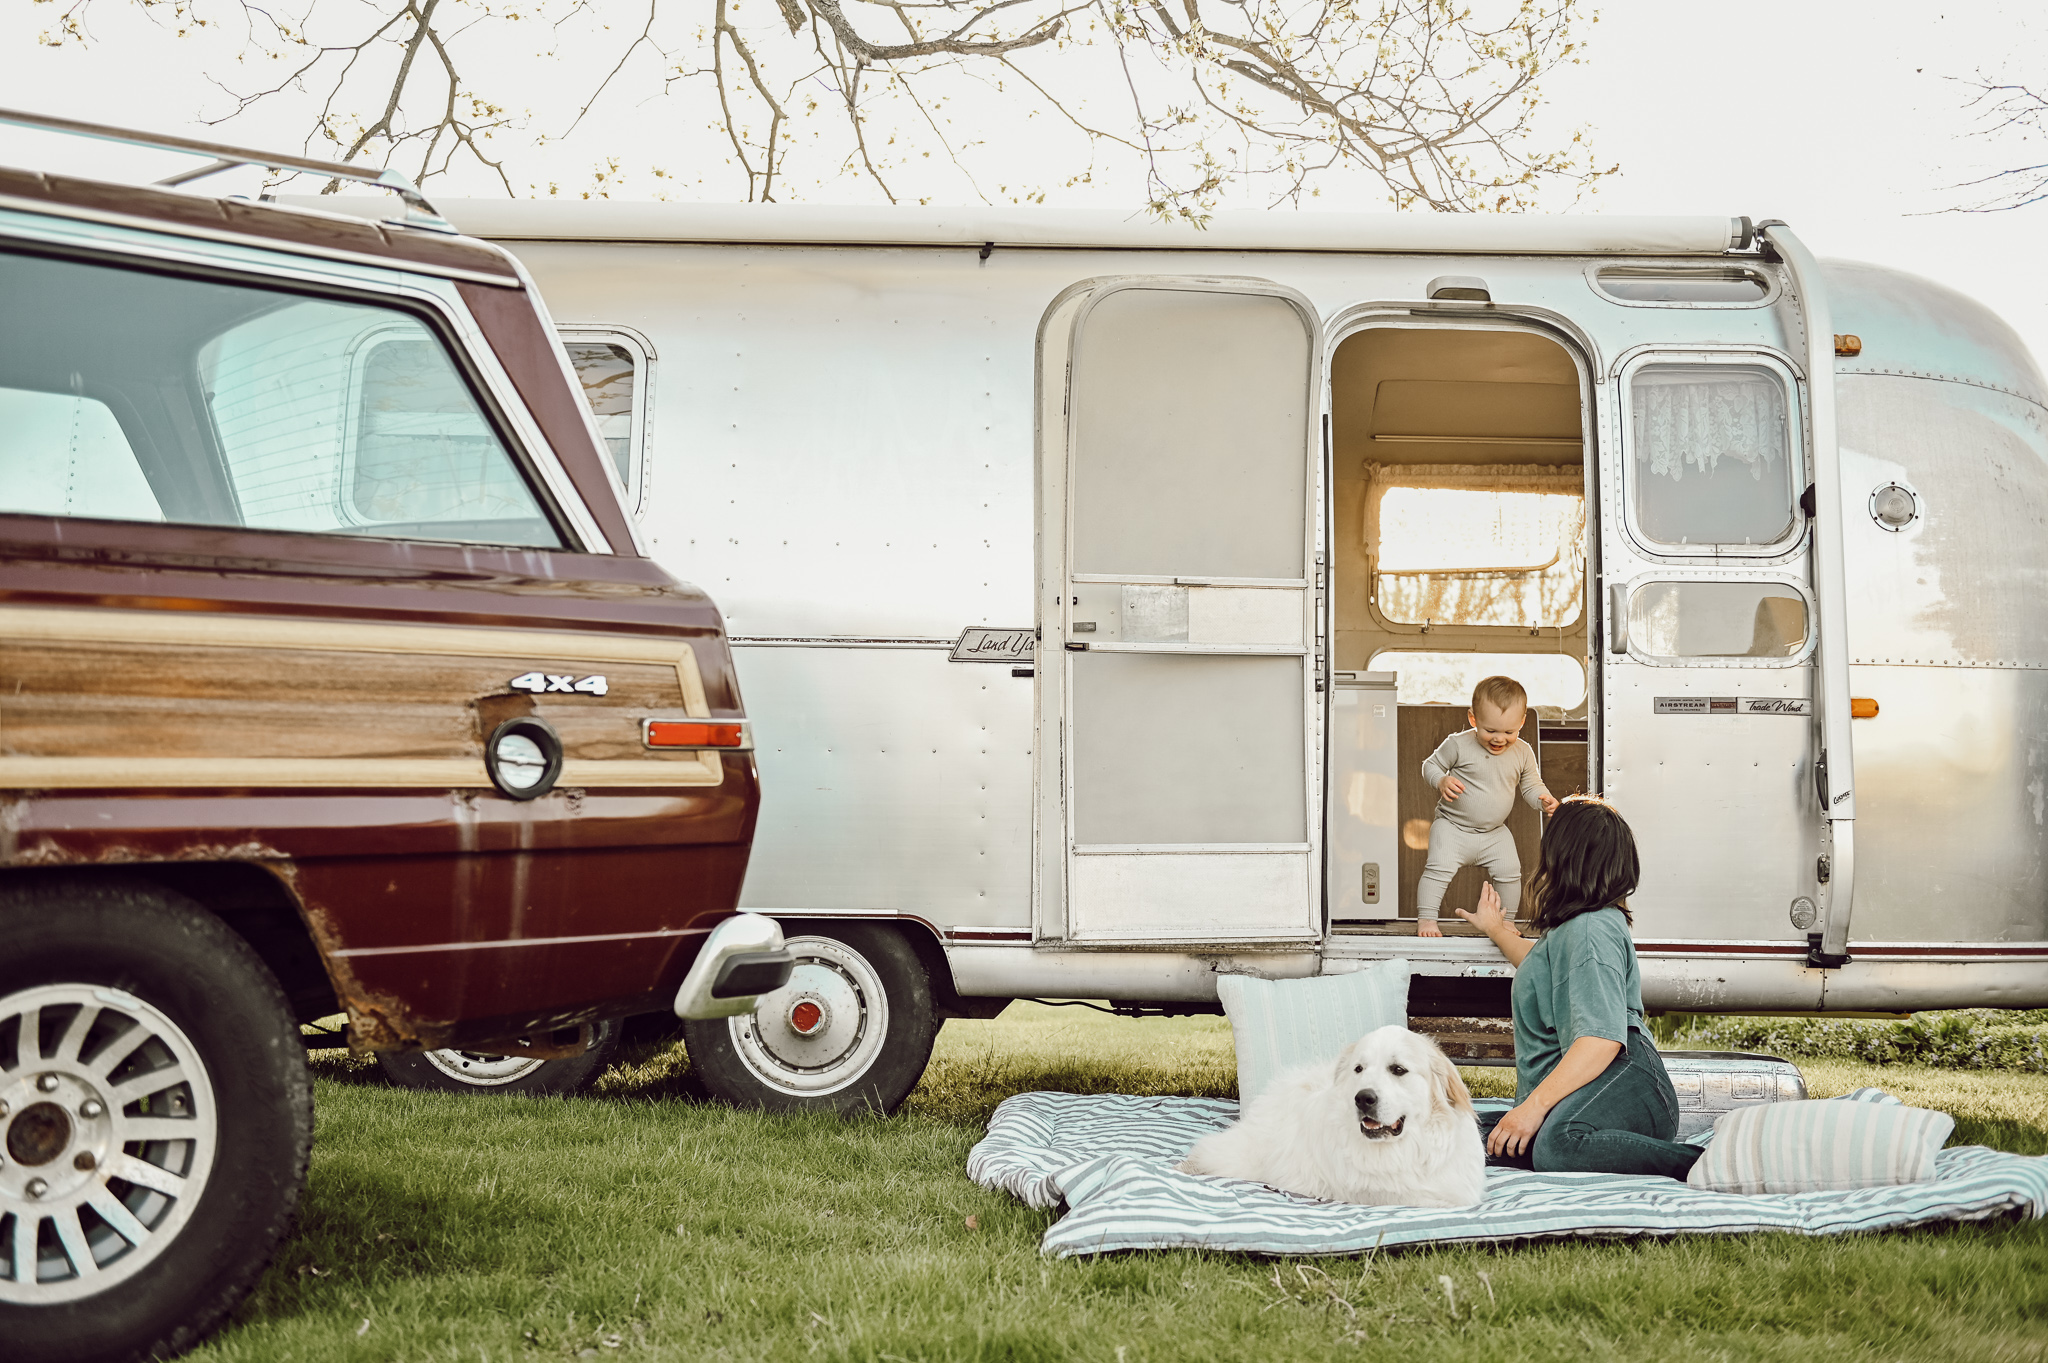 Pottery Barn x Airstream Launch